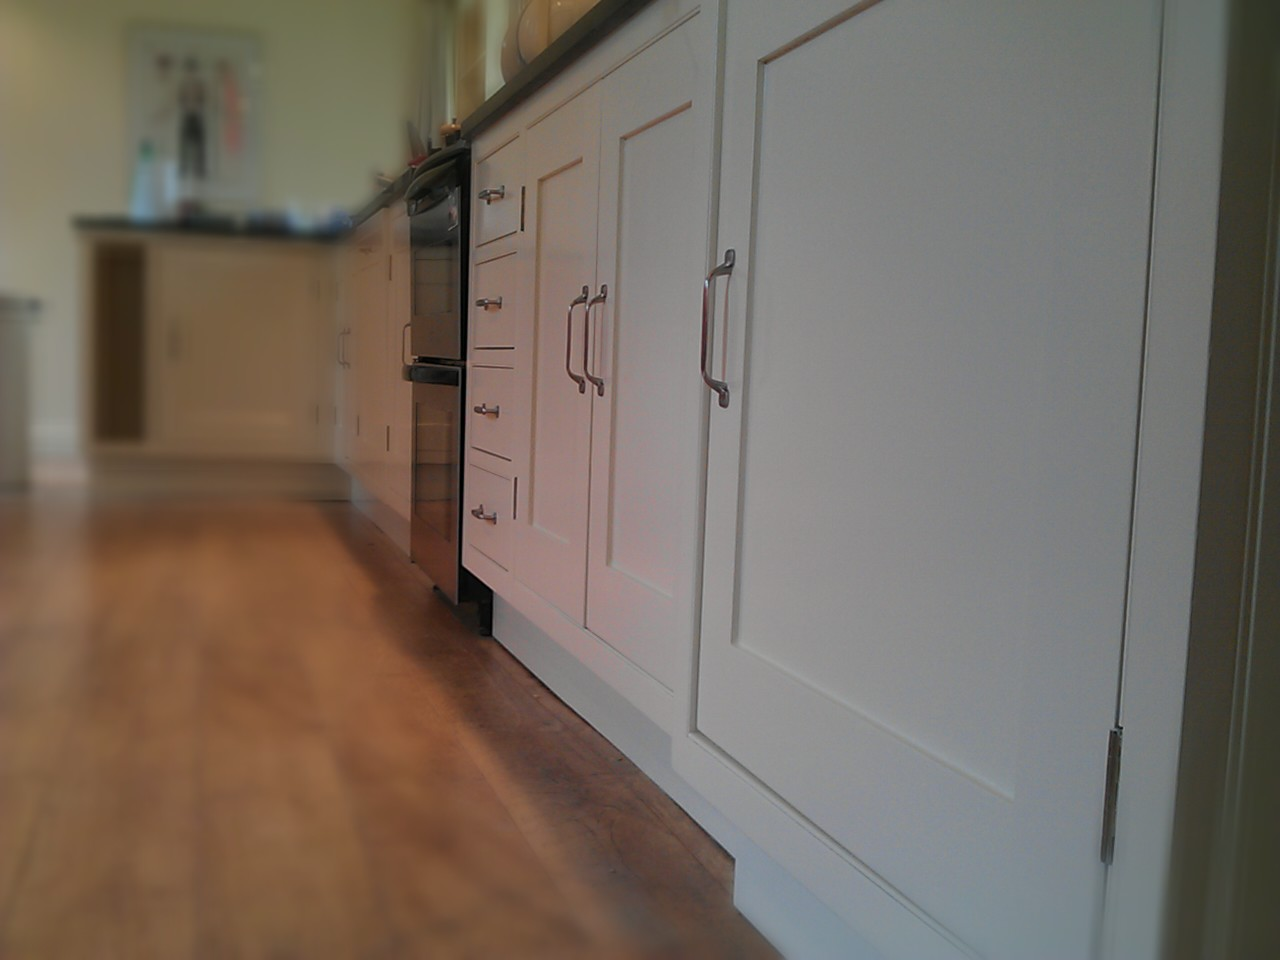 Handmade kitchen cabinets by wychwood joinery cabinet painting by specialist decorators Baker Southern Ltd